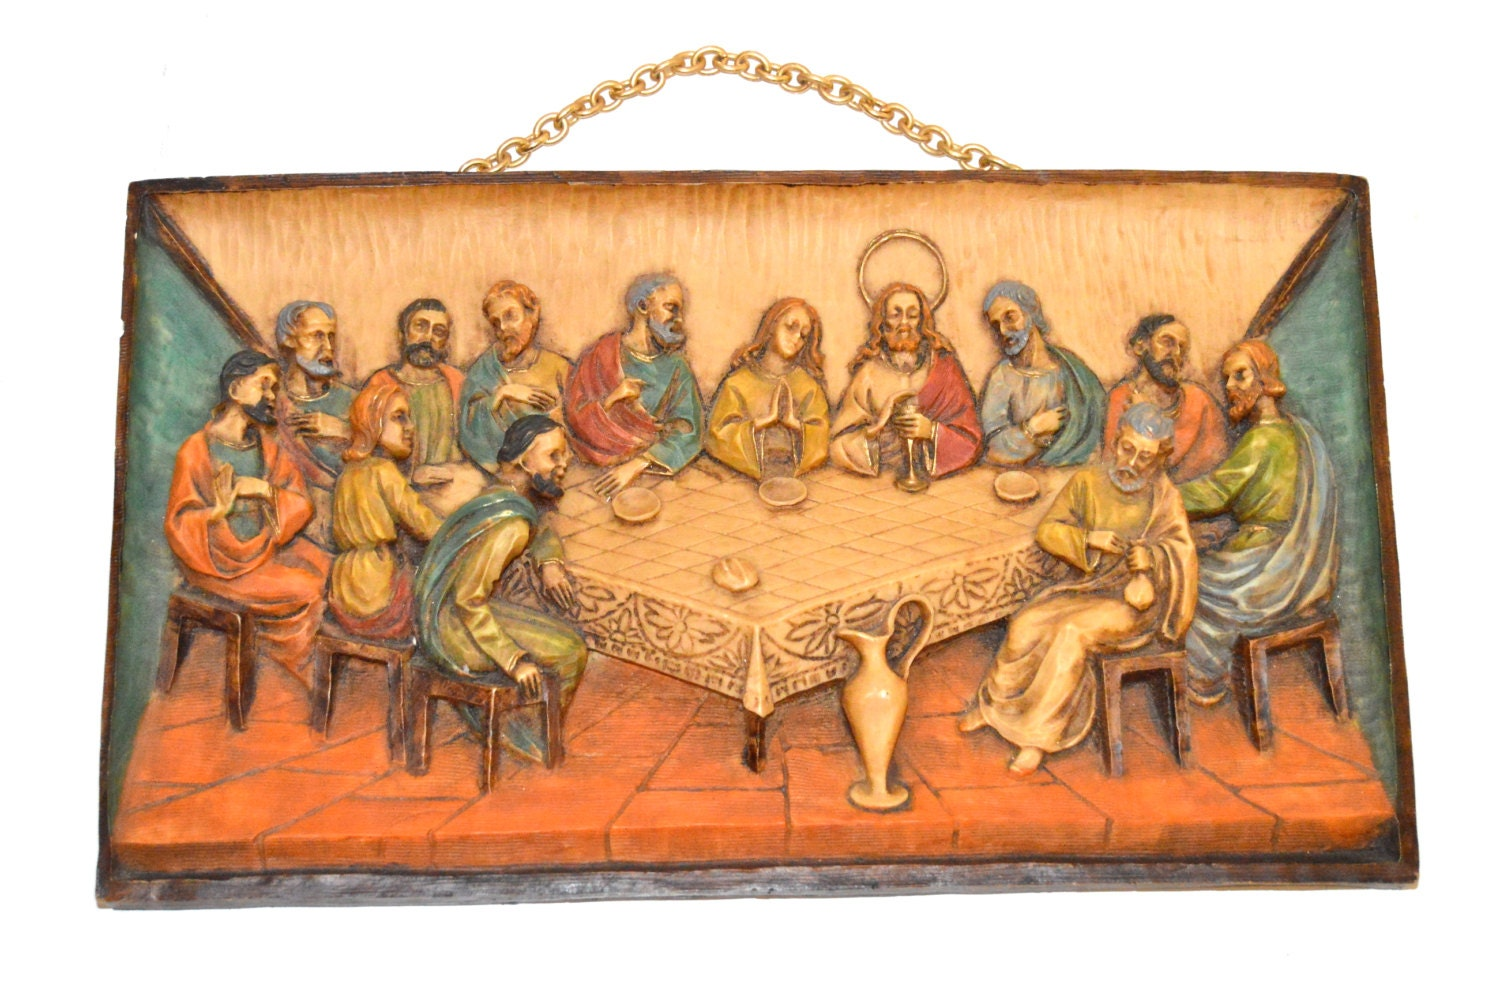 the last supper wall plaque vintage wall hanging 3 dimensional. Black Bedroom Furniture Sets. Home Design Ideas